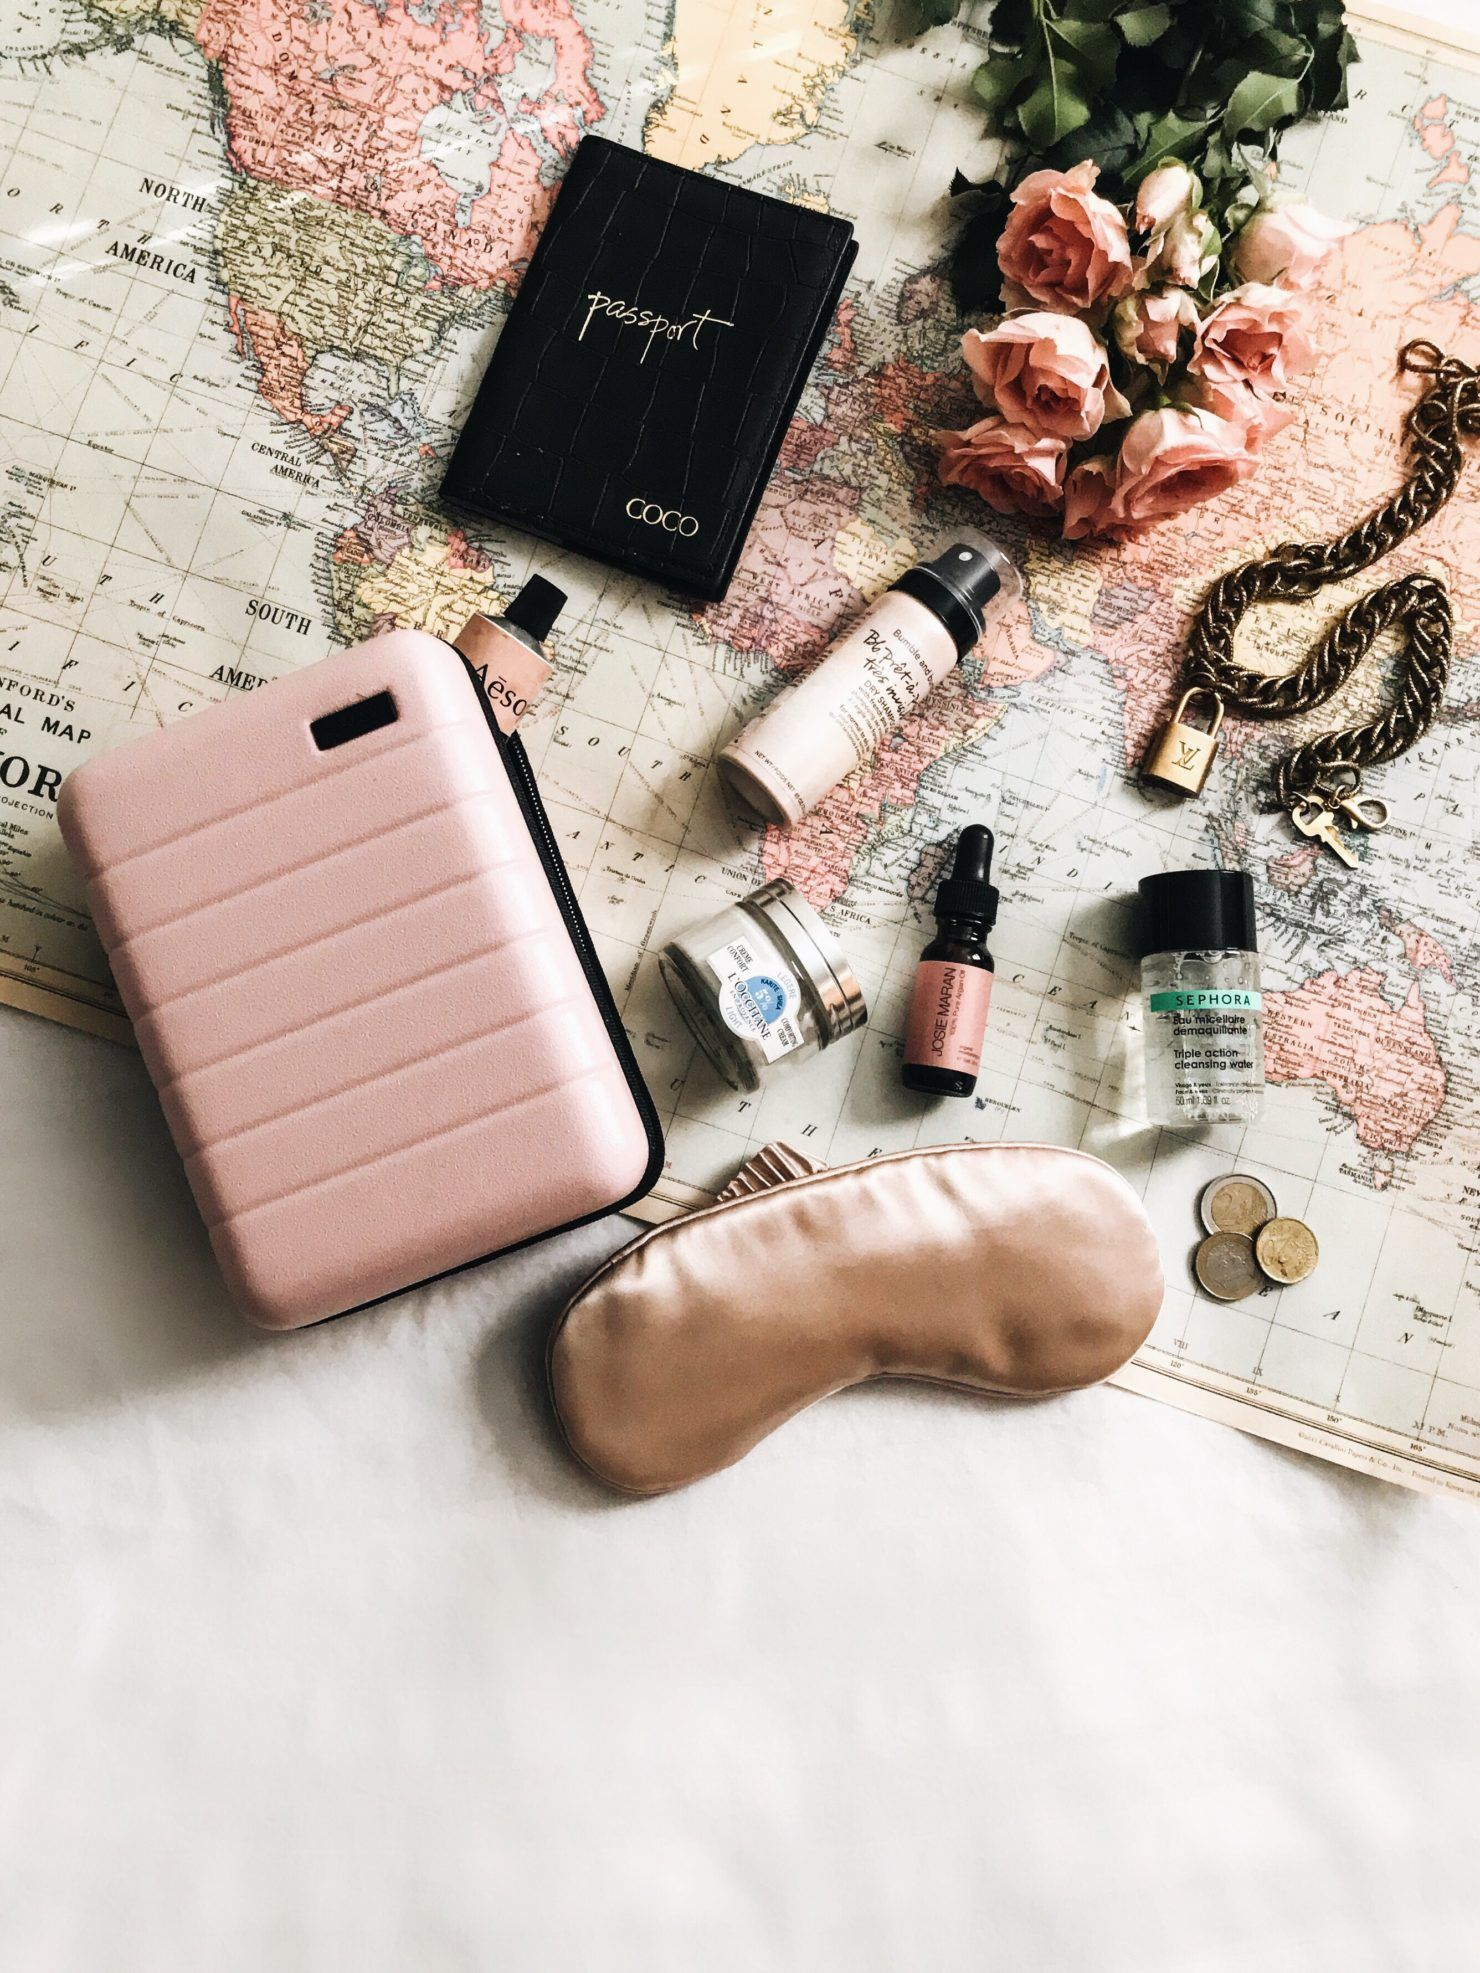 Away Blush Mini + My Top 5 Travel Beauty Essentials